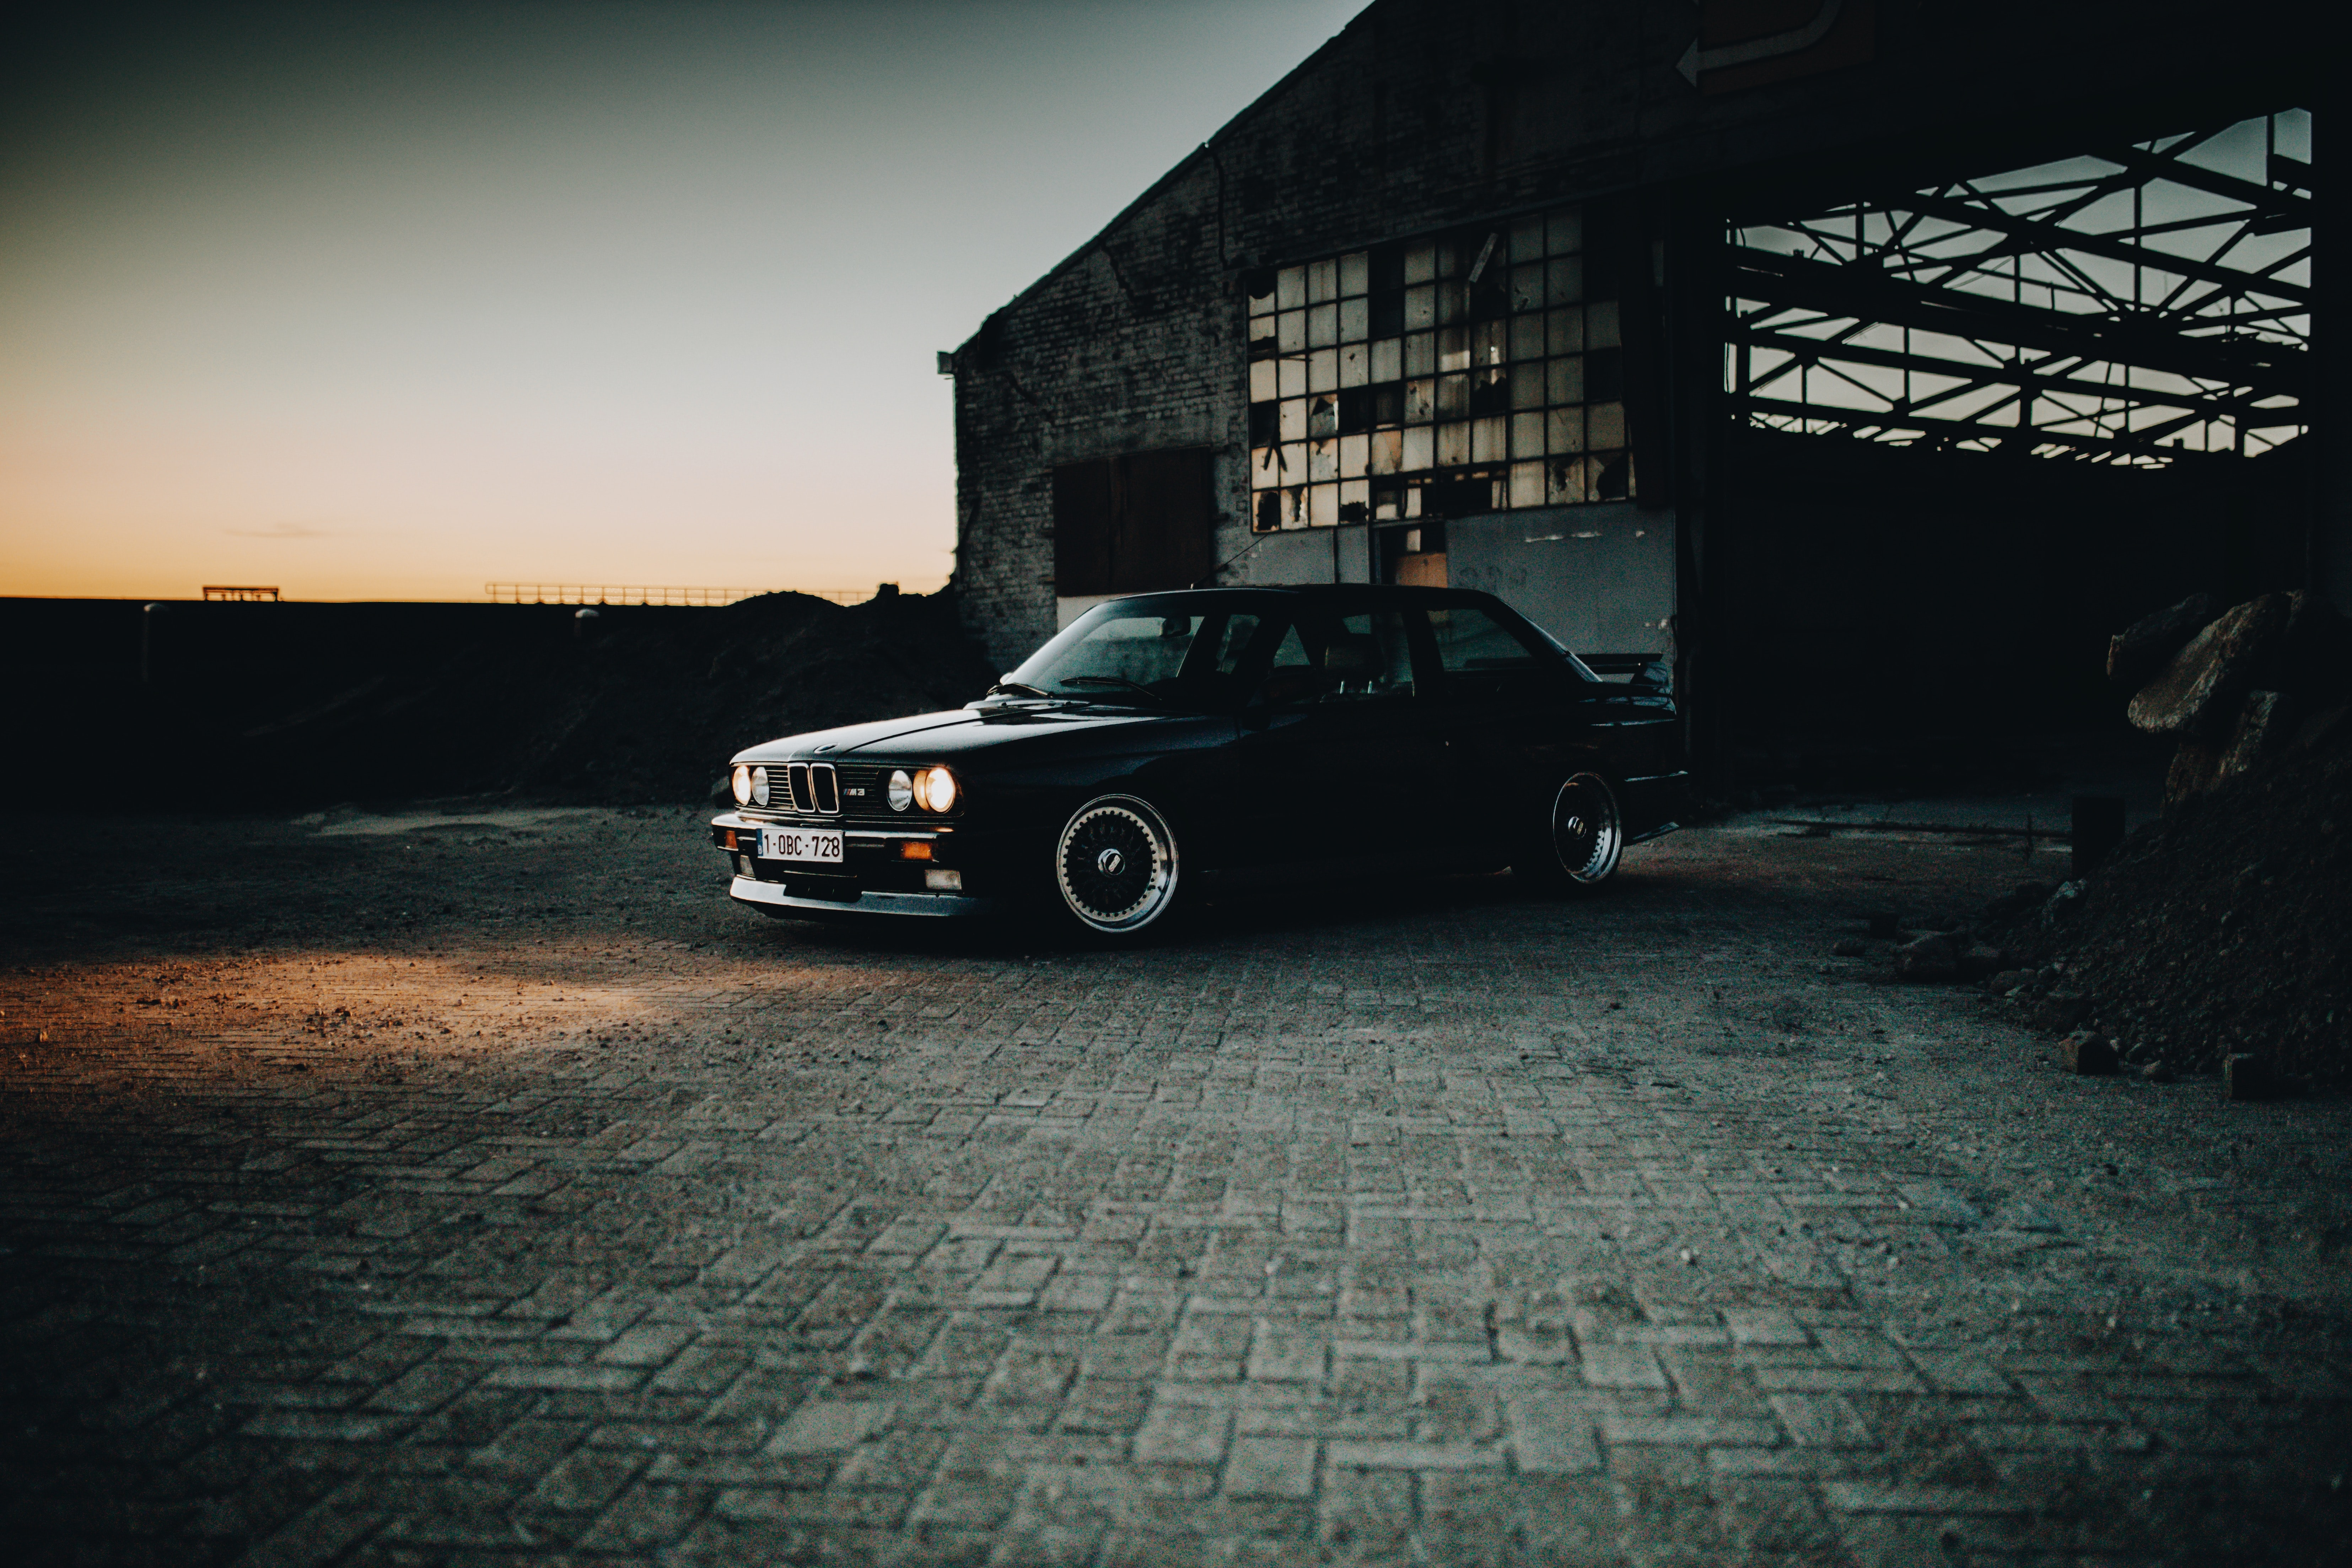 108053 download wallpaper Cars, Car, Retro, Headlights, Lights, Glow, Dark screensavers and pictures for free